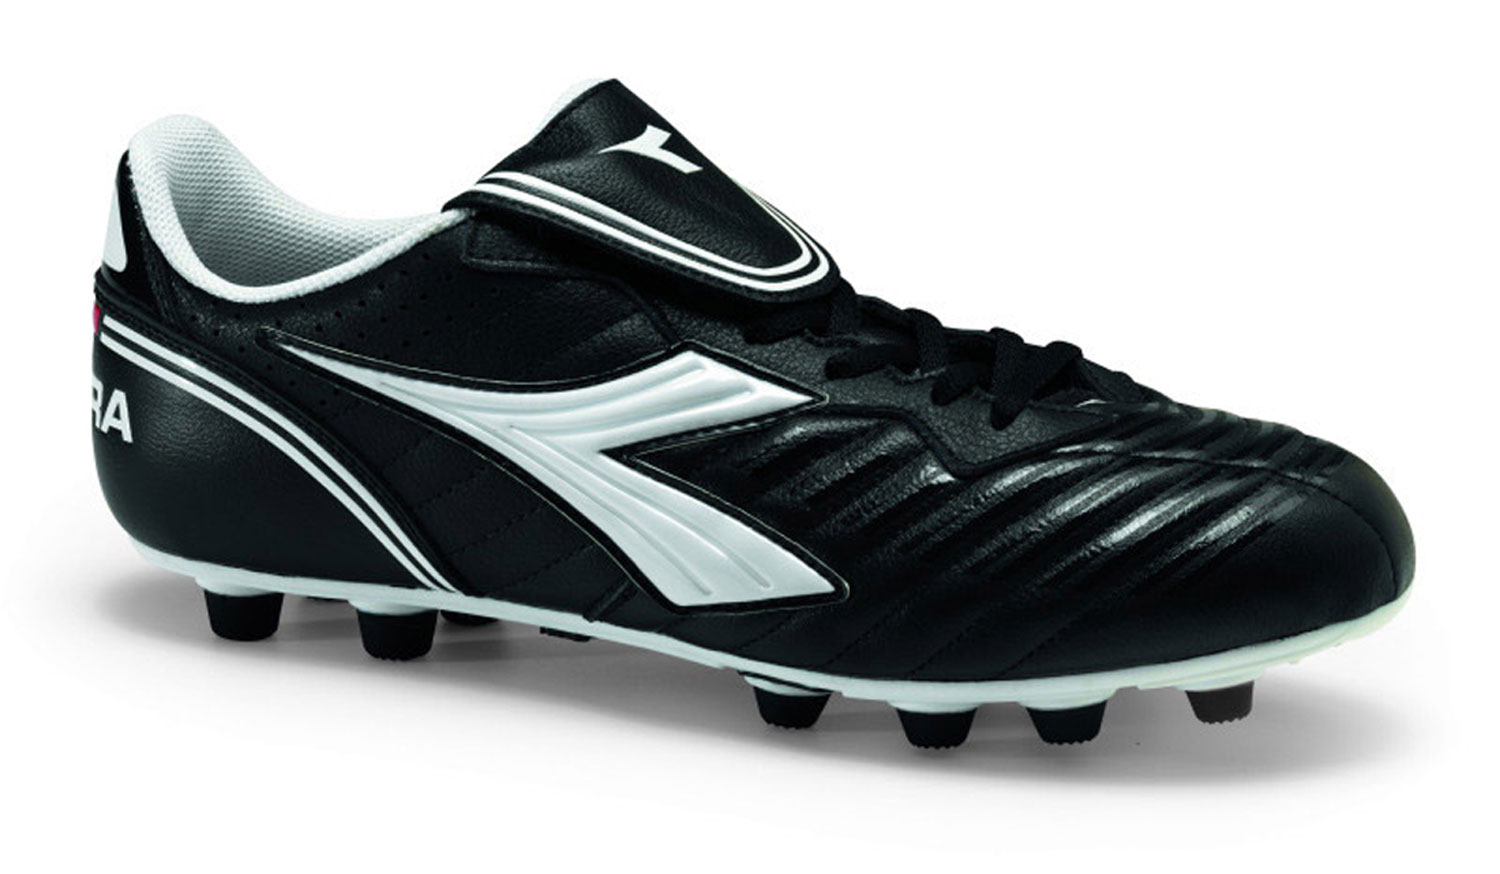 Scudetto soccer shoe at Code Four Athletics